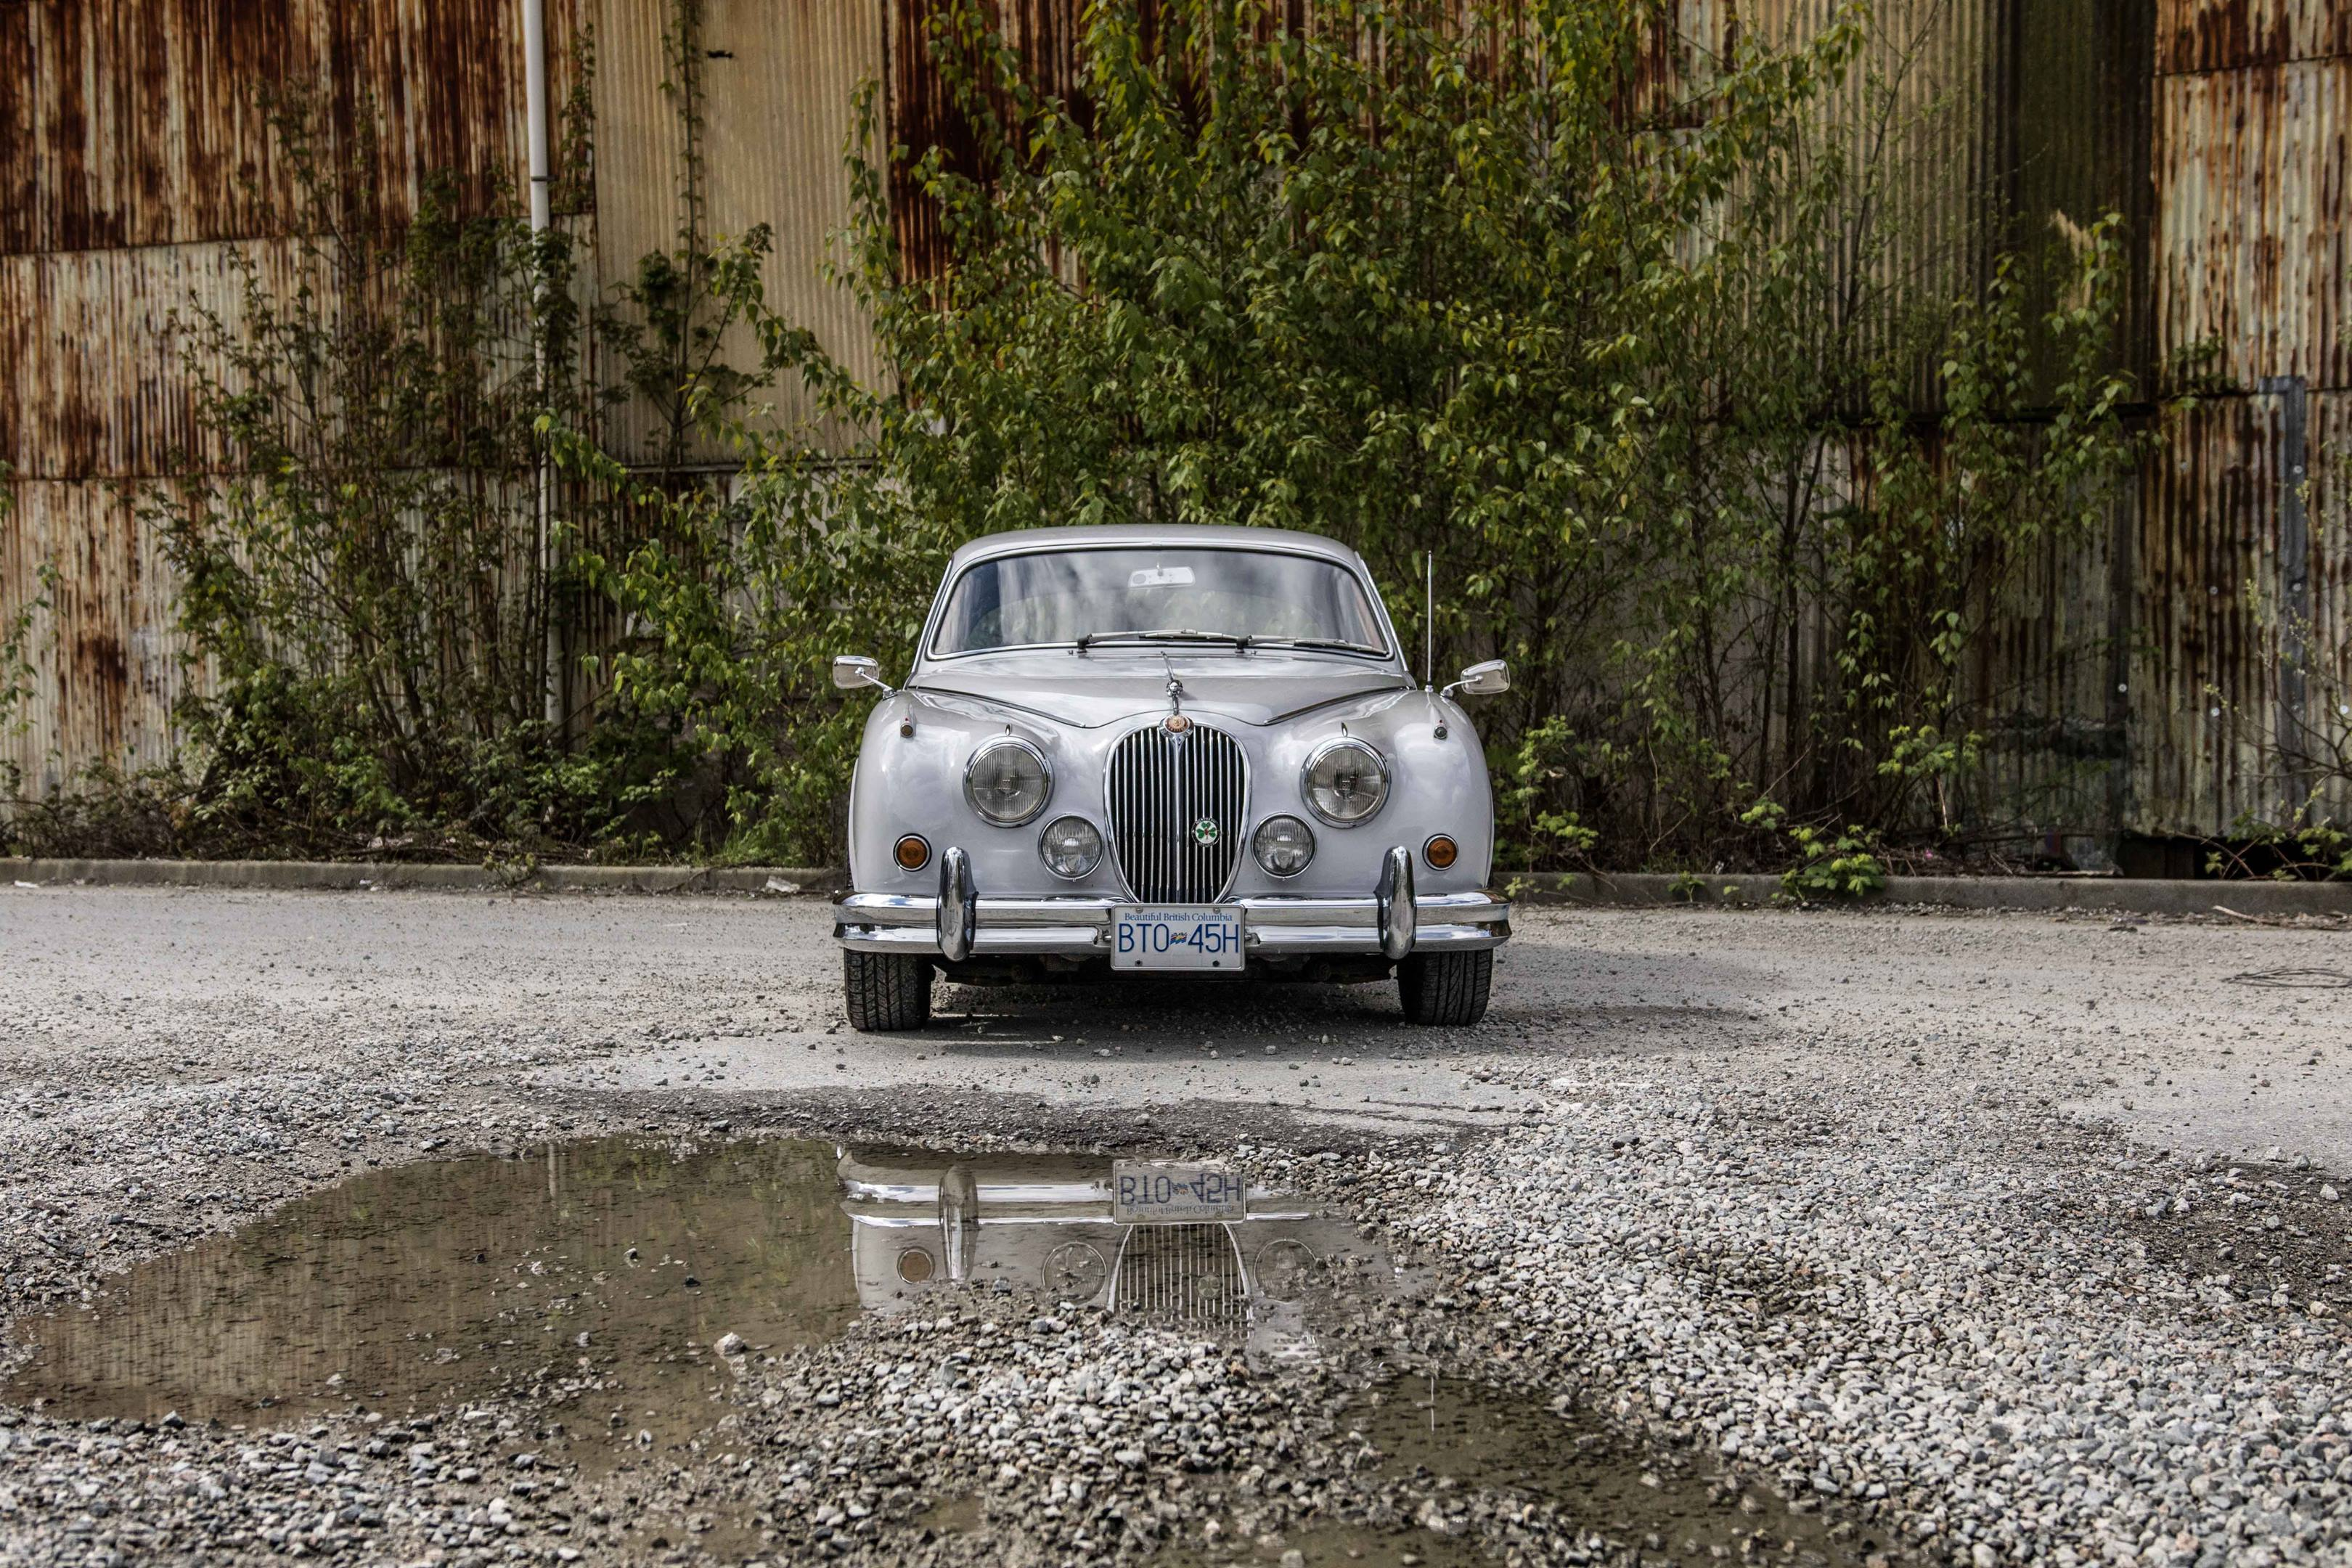 Jaguar Mark II front